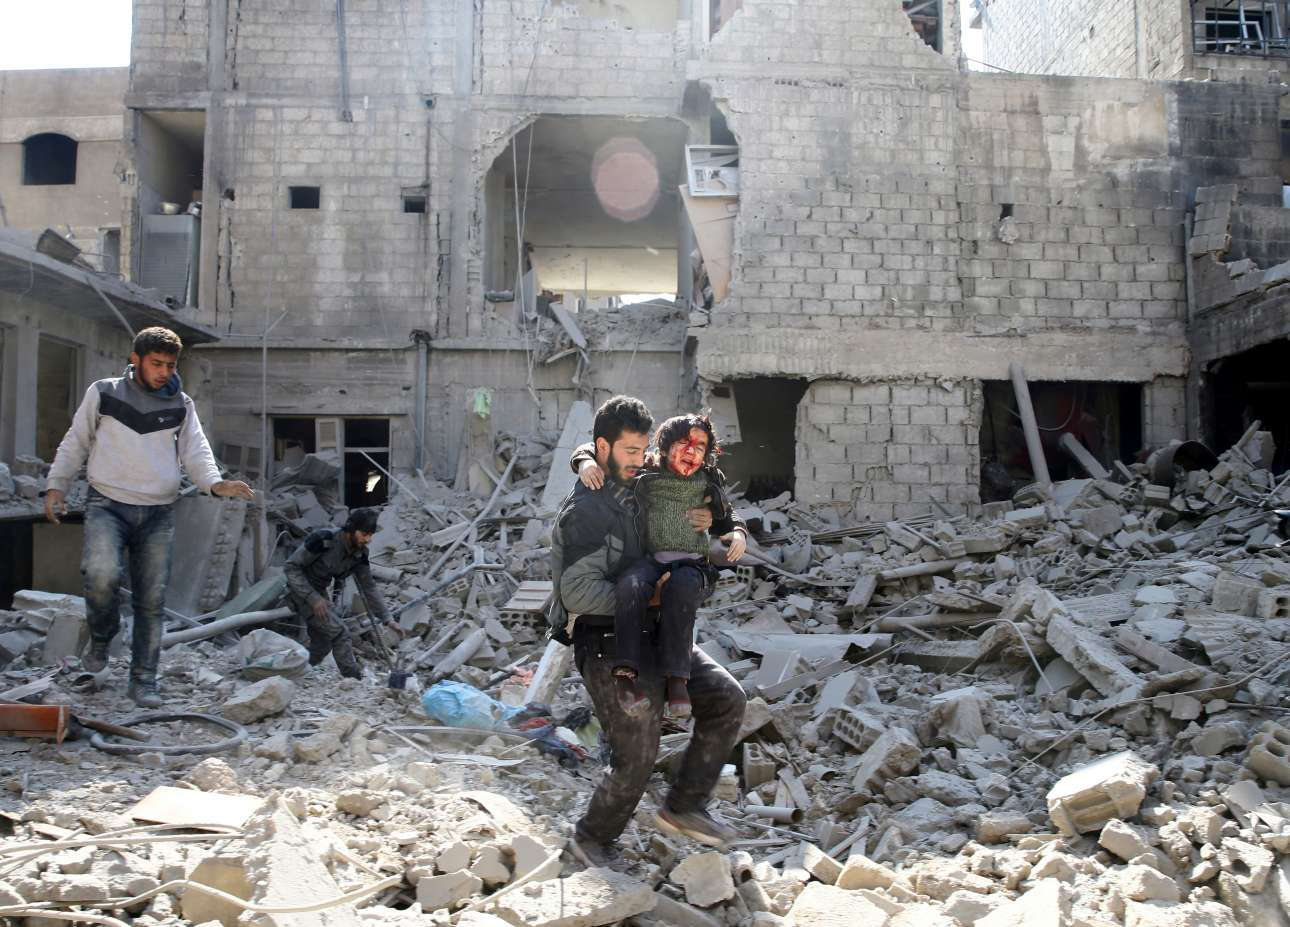 2018-02-21T134501Z_1898147744_RC19D6351BE0_RTRMADP_3_MIDEAST-CRISIS-SYRIA-GHOUTA